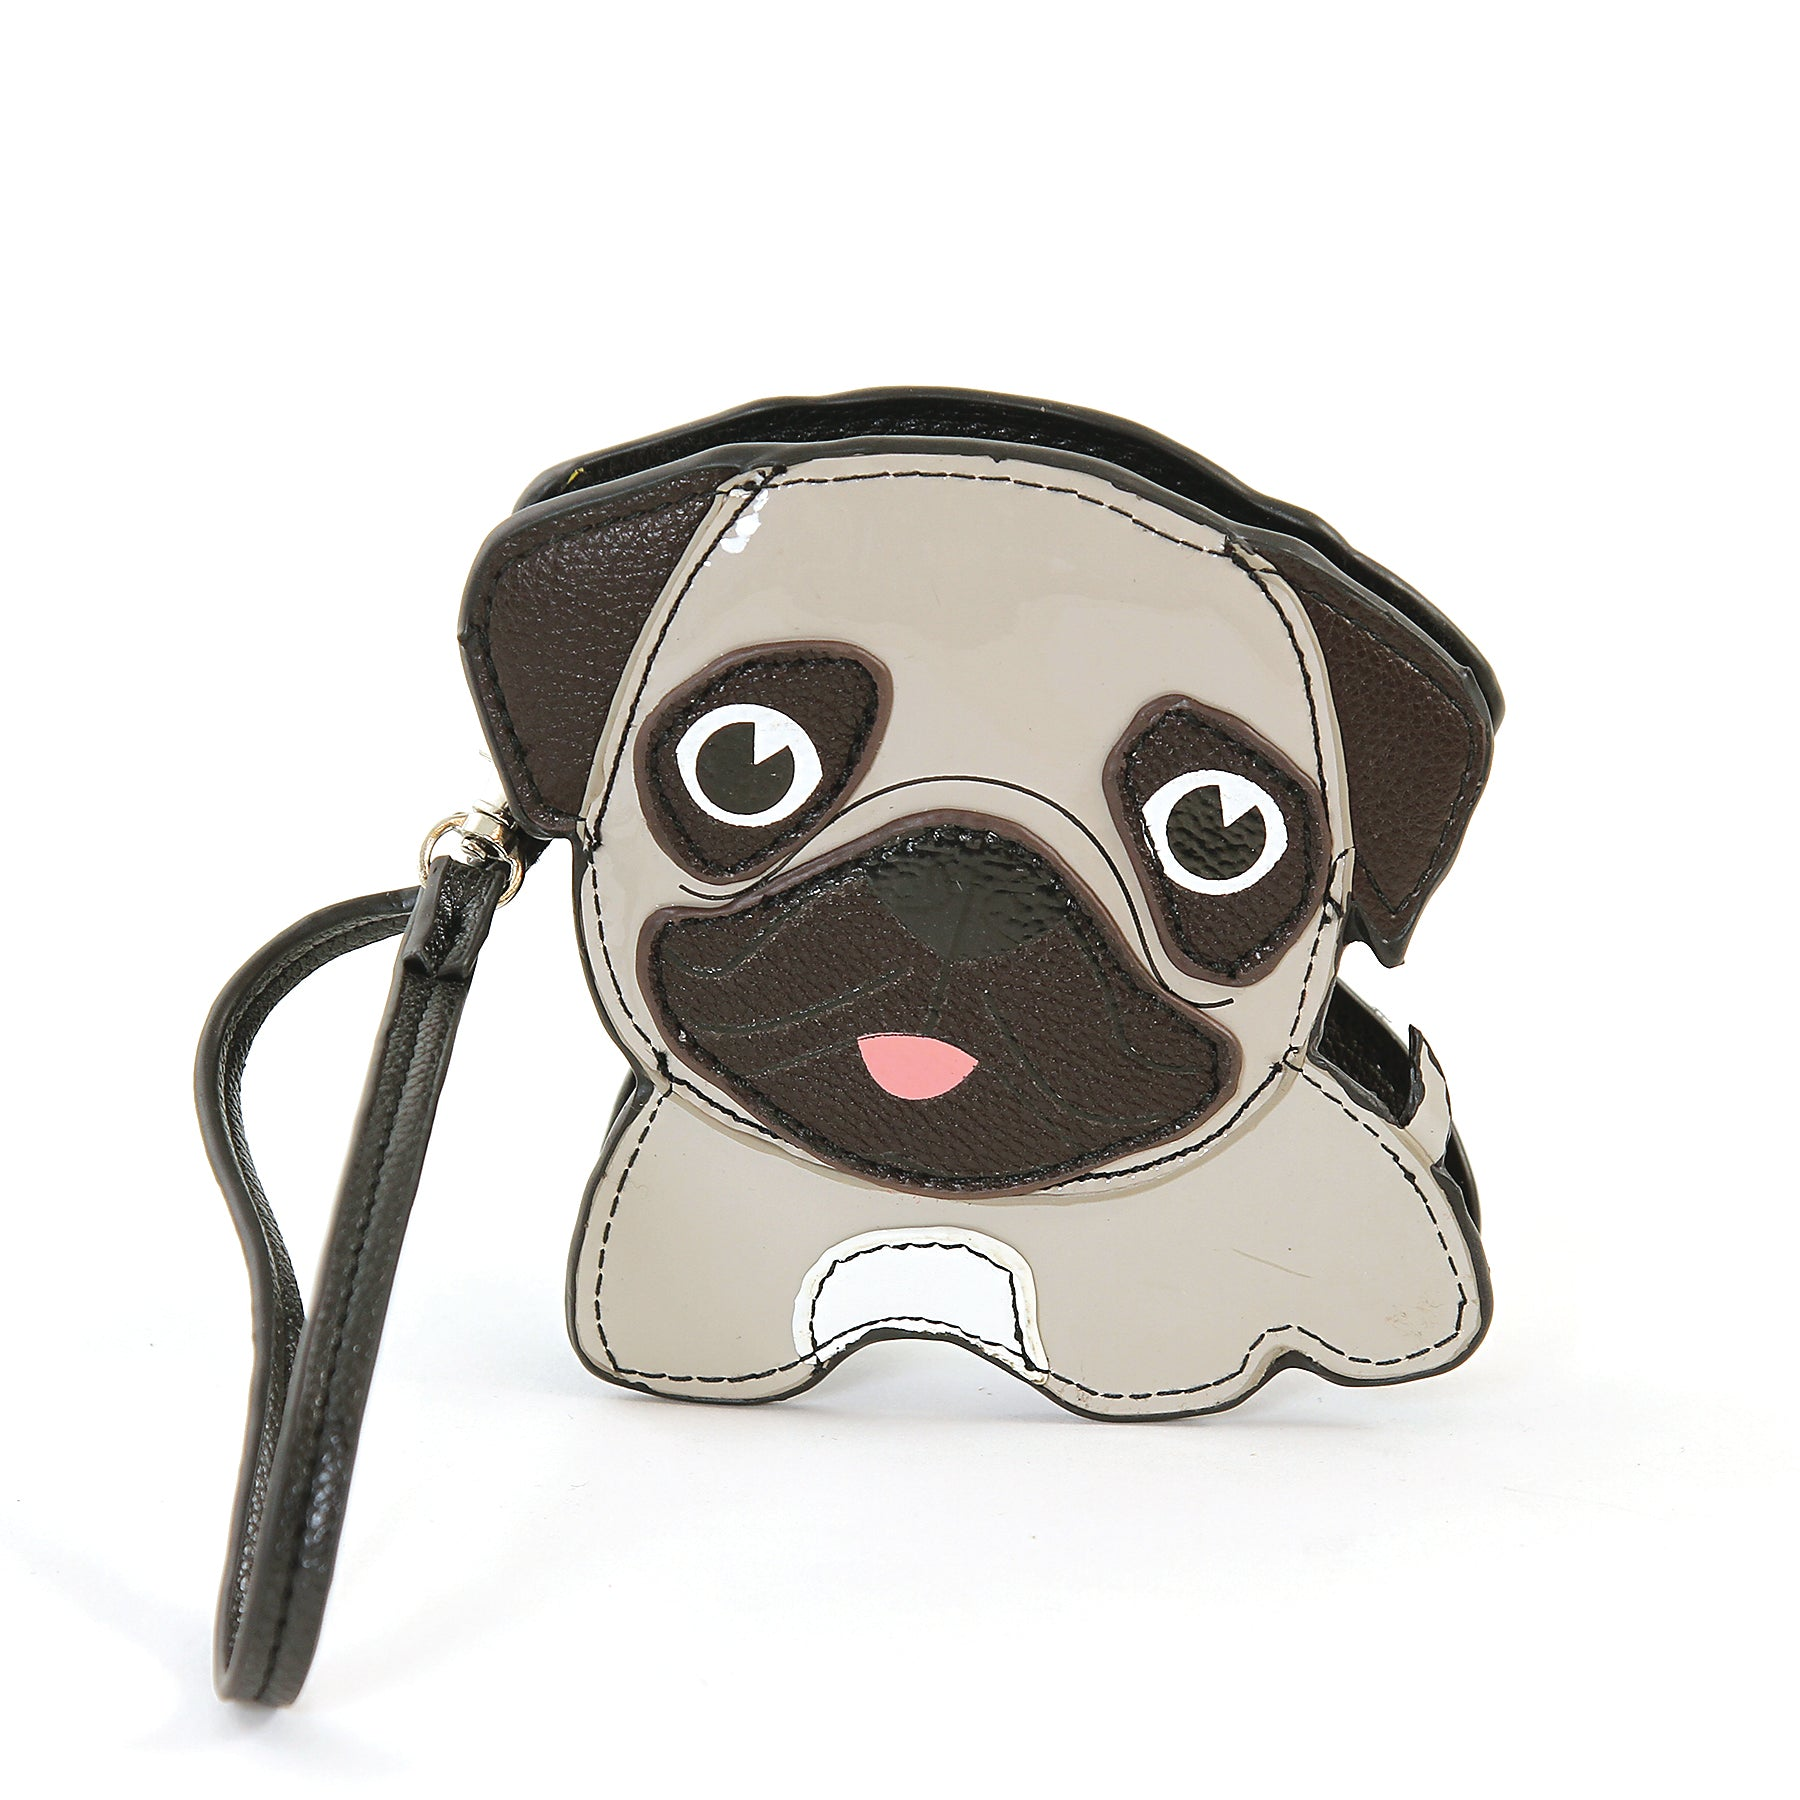 Sleepyville Critters-Pug Puppy Zippered Coin Purse in Vinyl Material front view